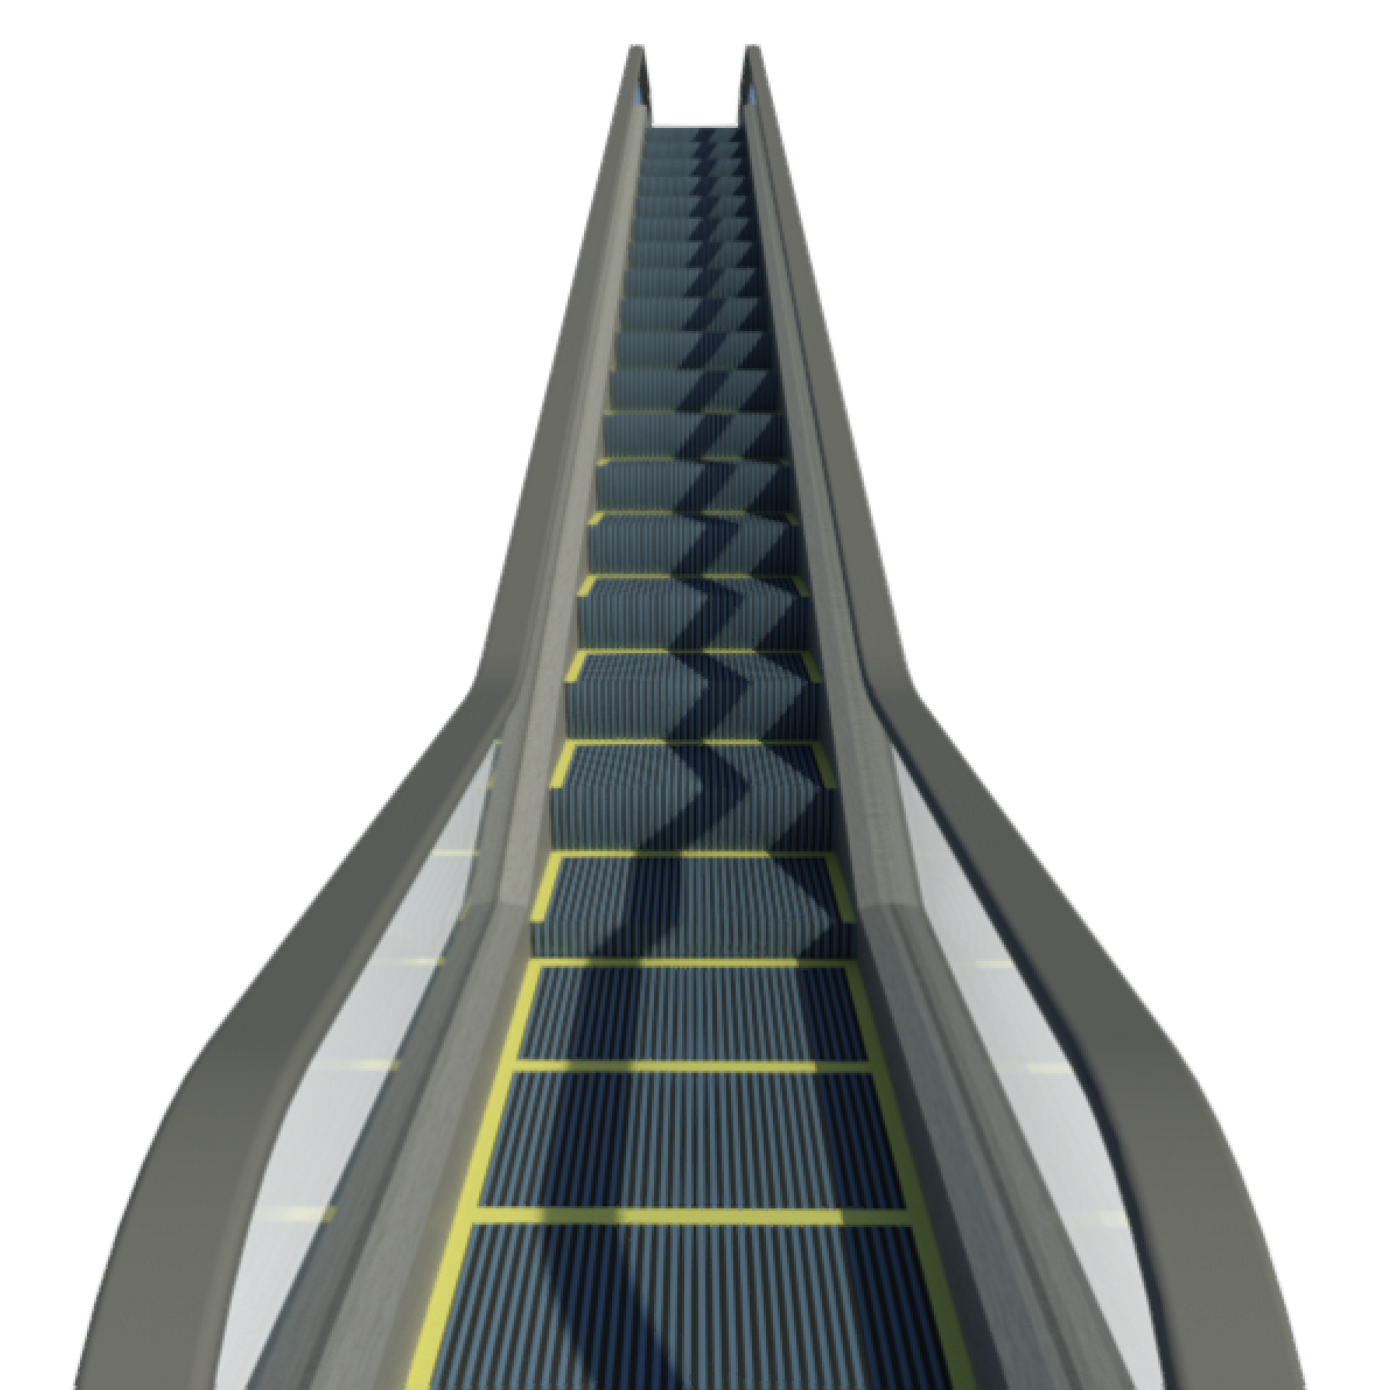 Render of escalator family from below